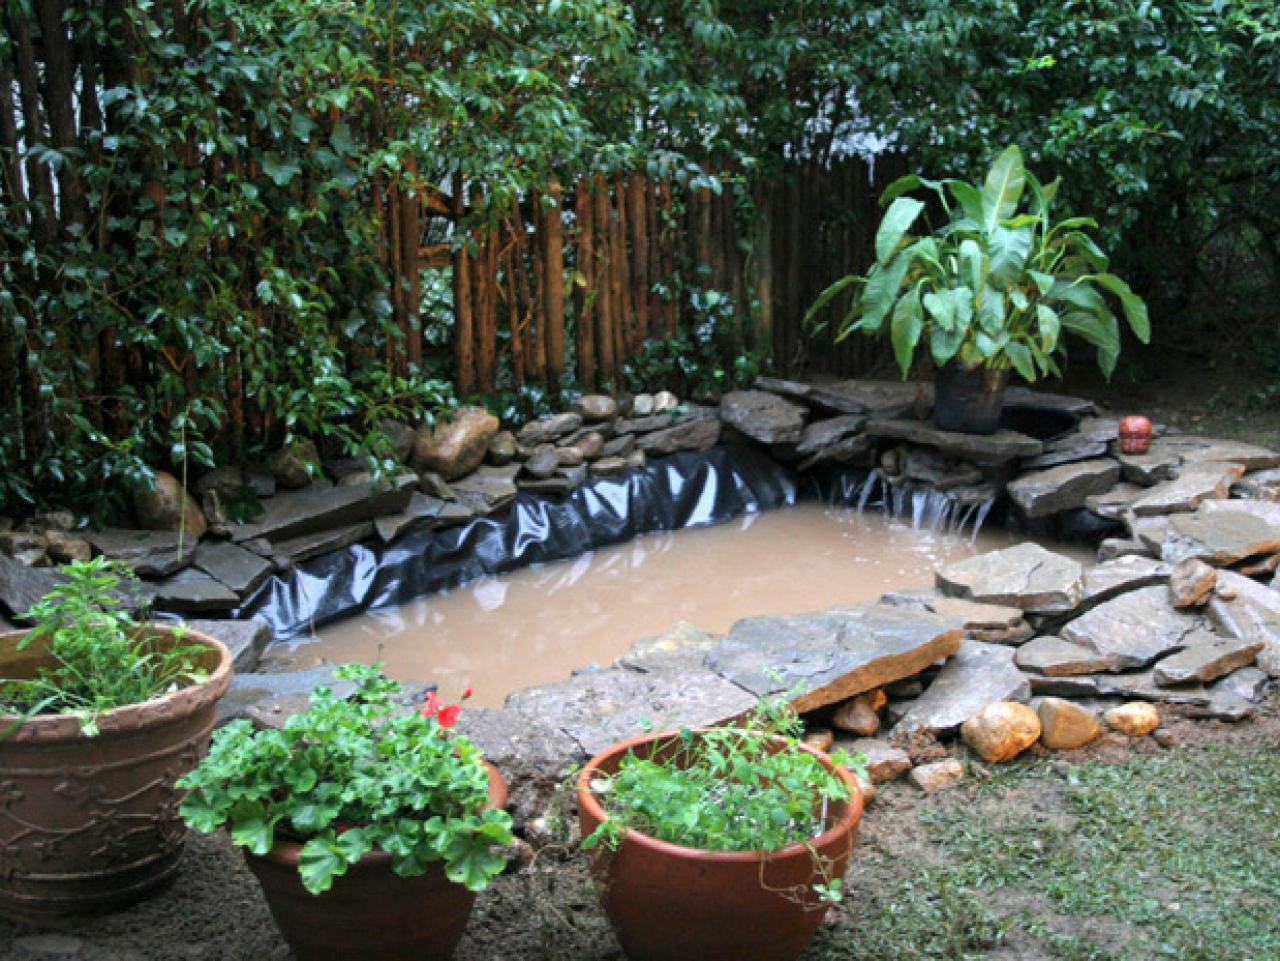 Outdoor pond installation hgtv for Outdoor fish ponds designs